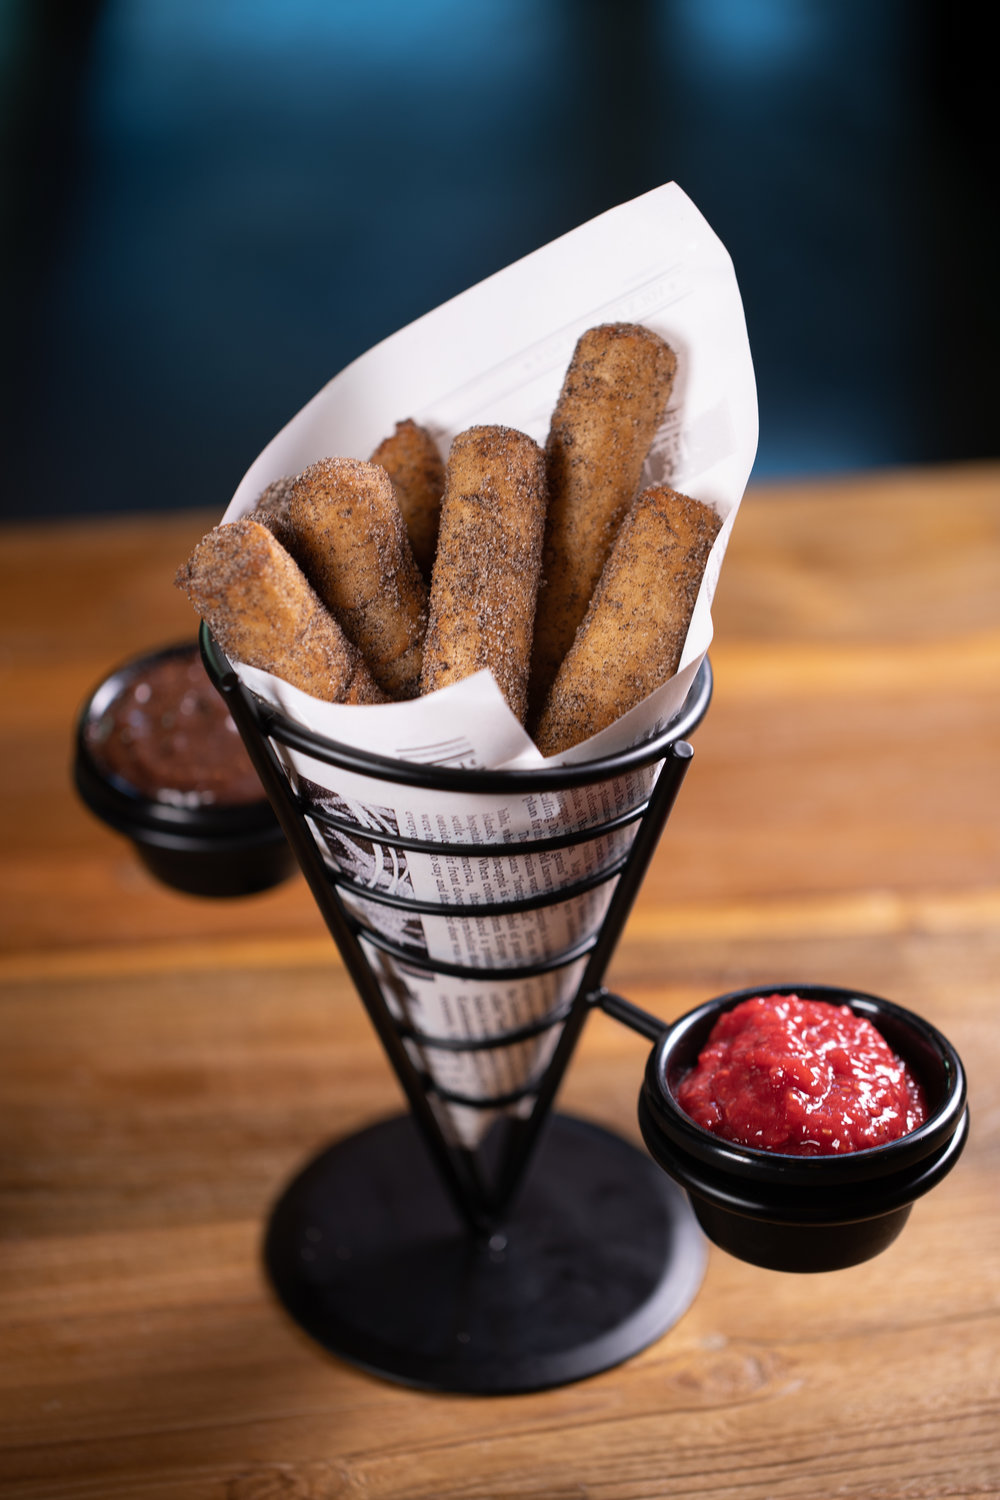 OREO® CRUMBS CHURROS - Cinnamon and Oreo® churros, served with raspberry coulis & hot fudge - $9